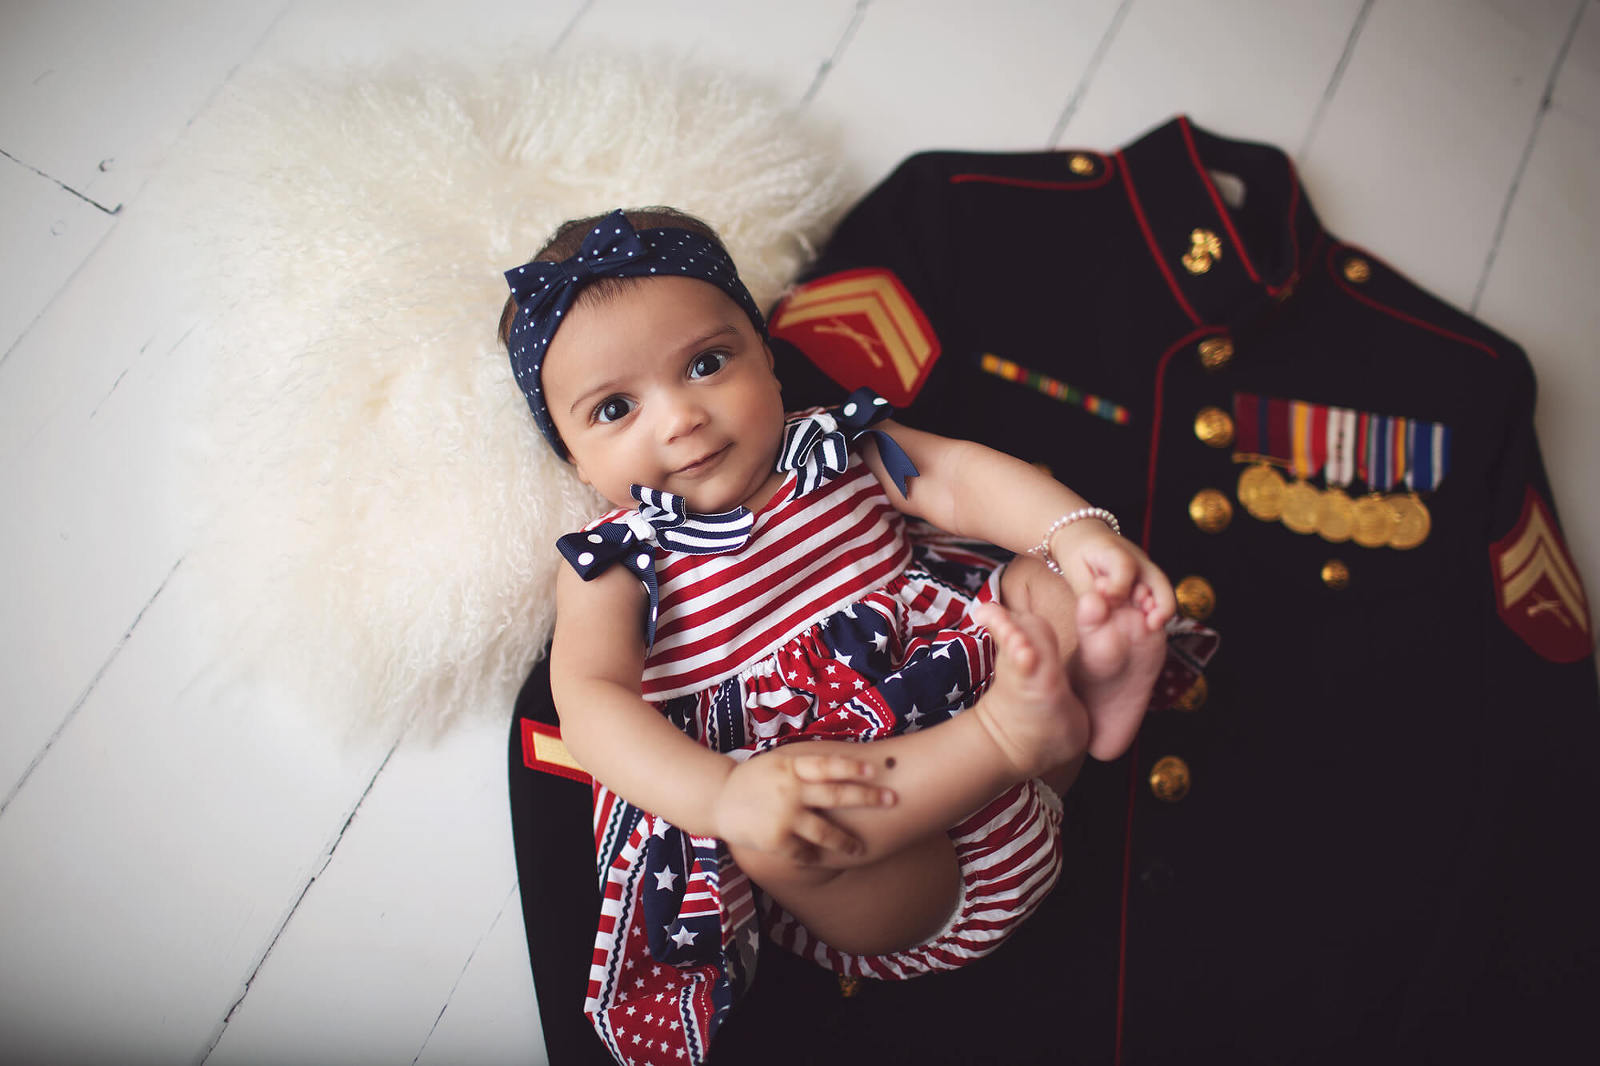 Baby Evelyn during her 3-month milestone session with her daddy's Marine Corps uniform